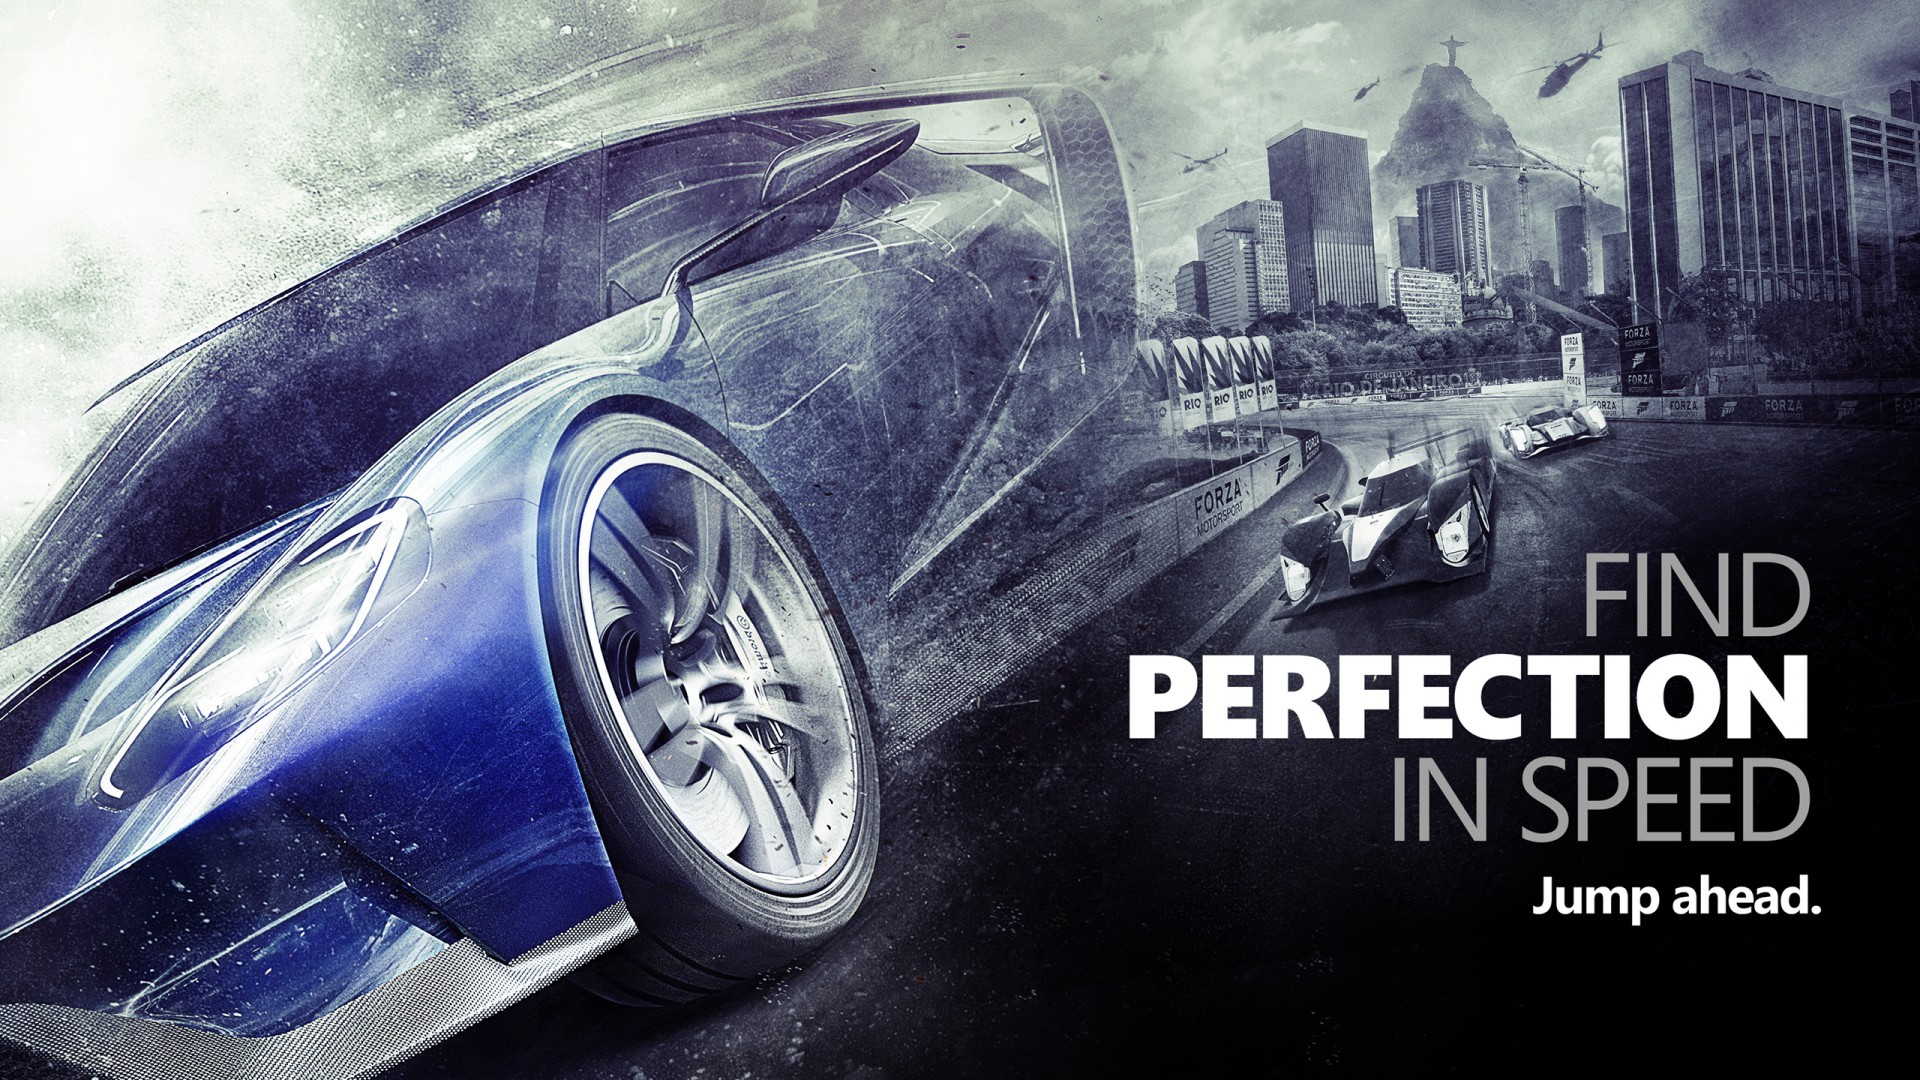 Iphone 6 Hd Car Wallpaper 1080p Forza Motorsport 6 Wallpapers Pictures Images